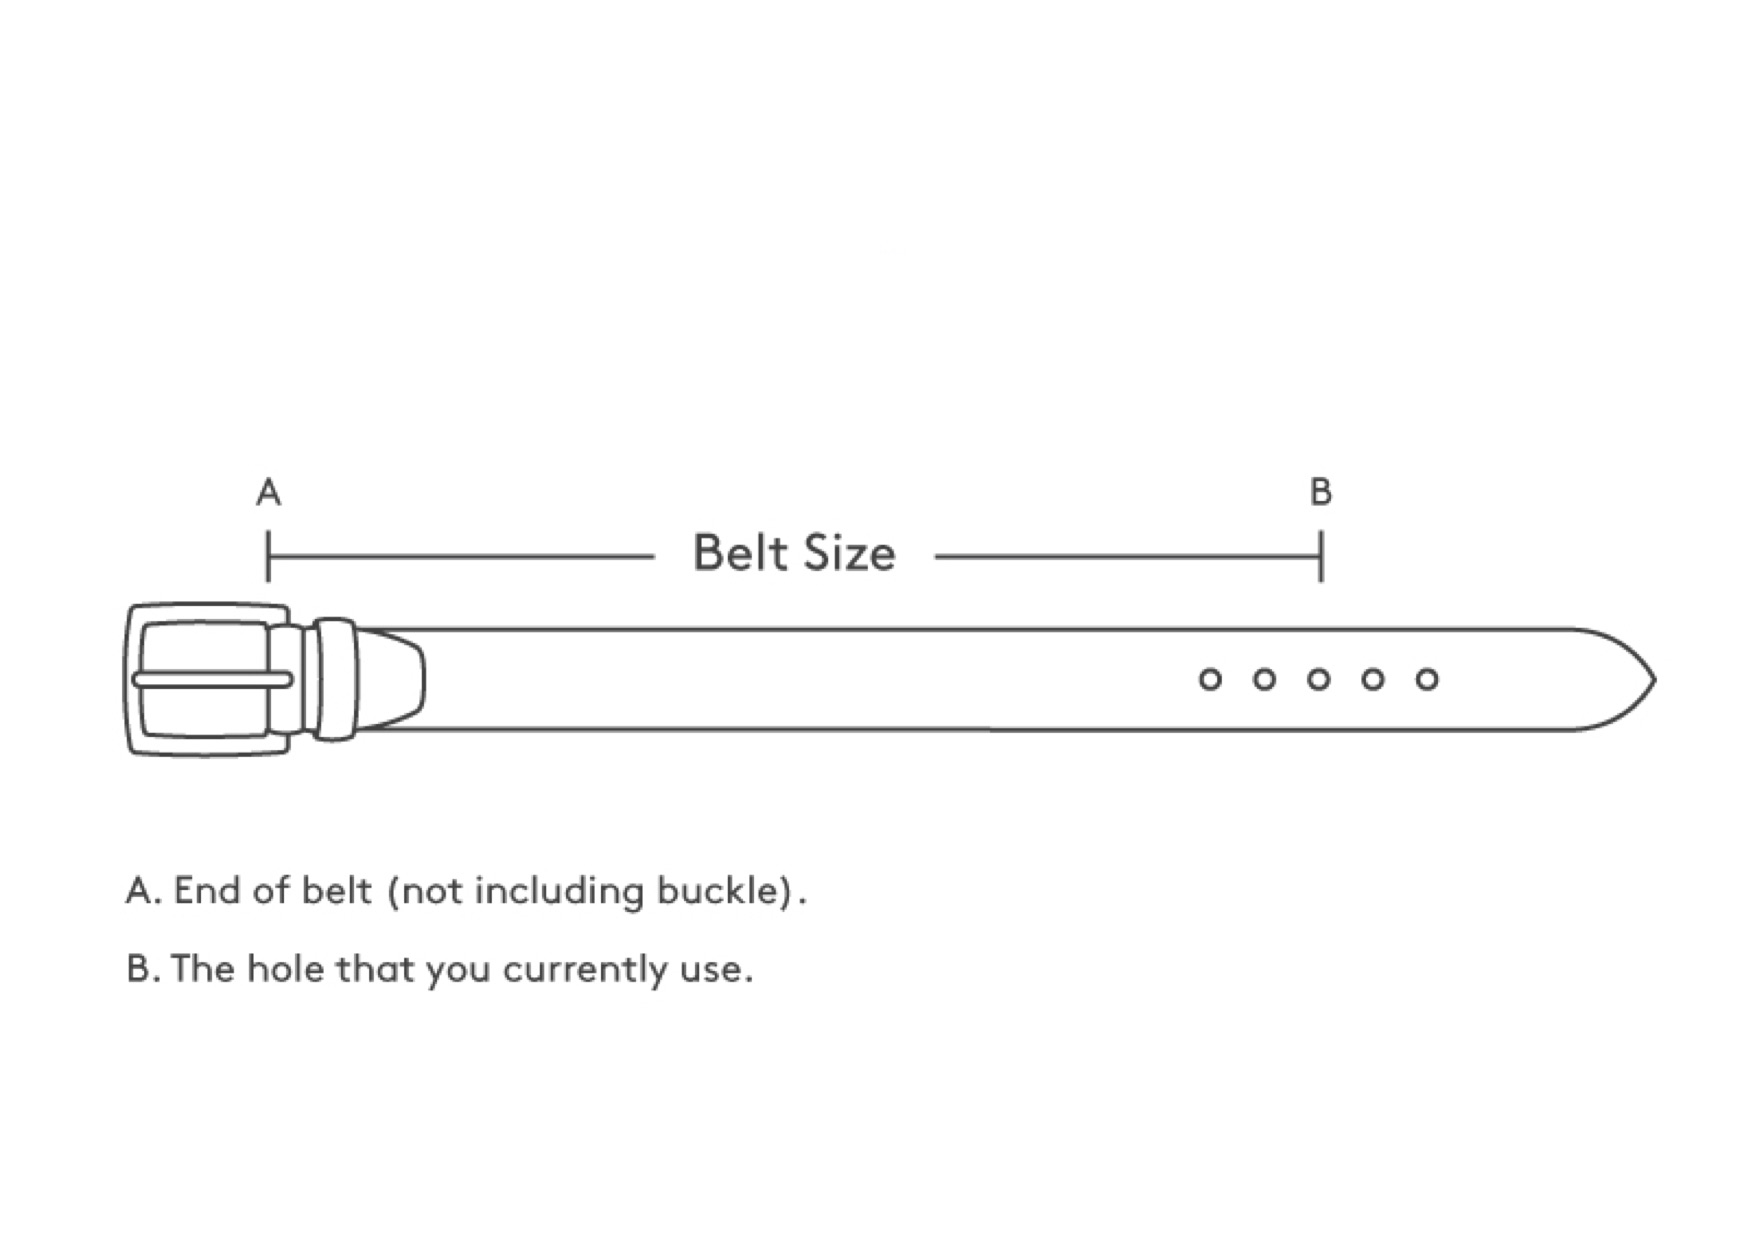 - How to Measure for a Belt Size:The best way to measure for your size belt is around your body where you wear the belt. That is the size belt you need to order.If it is an odd number, round up to the next even number.Belts are measured by length from where the buckle meets the leather, to the middle hole.The rest of the belt is not considered for measurement purposes. Do not include the buckle length in your measurement.Please note, belt sizes ARE NOT measured from end to end. You will not get the correct size that way.